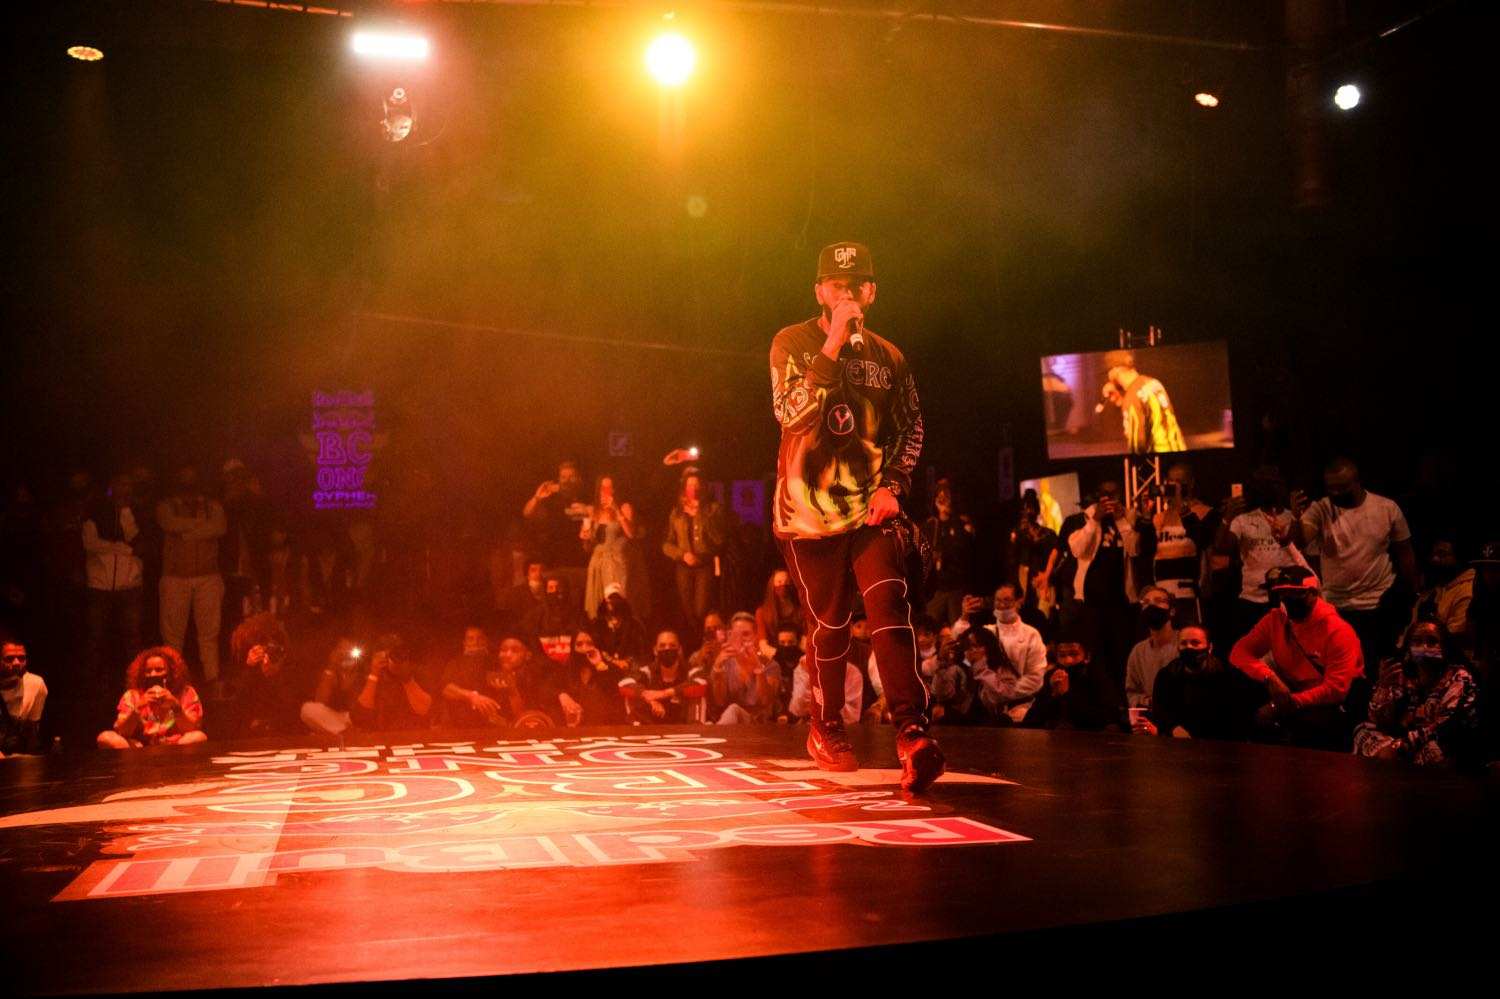 Youngsta CPT performing at the 2021 Red Bull BC One National Finals